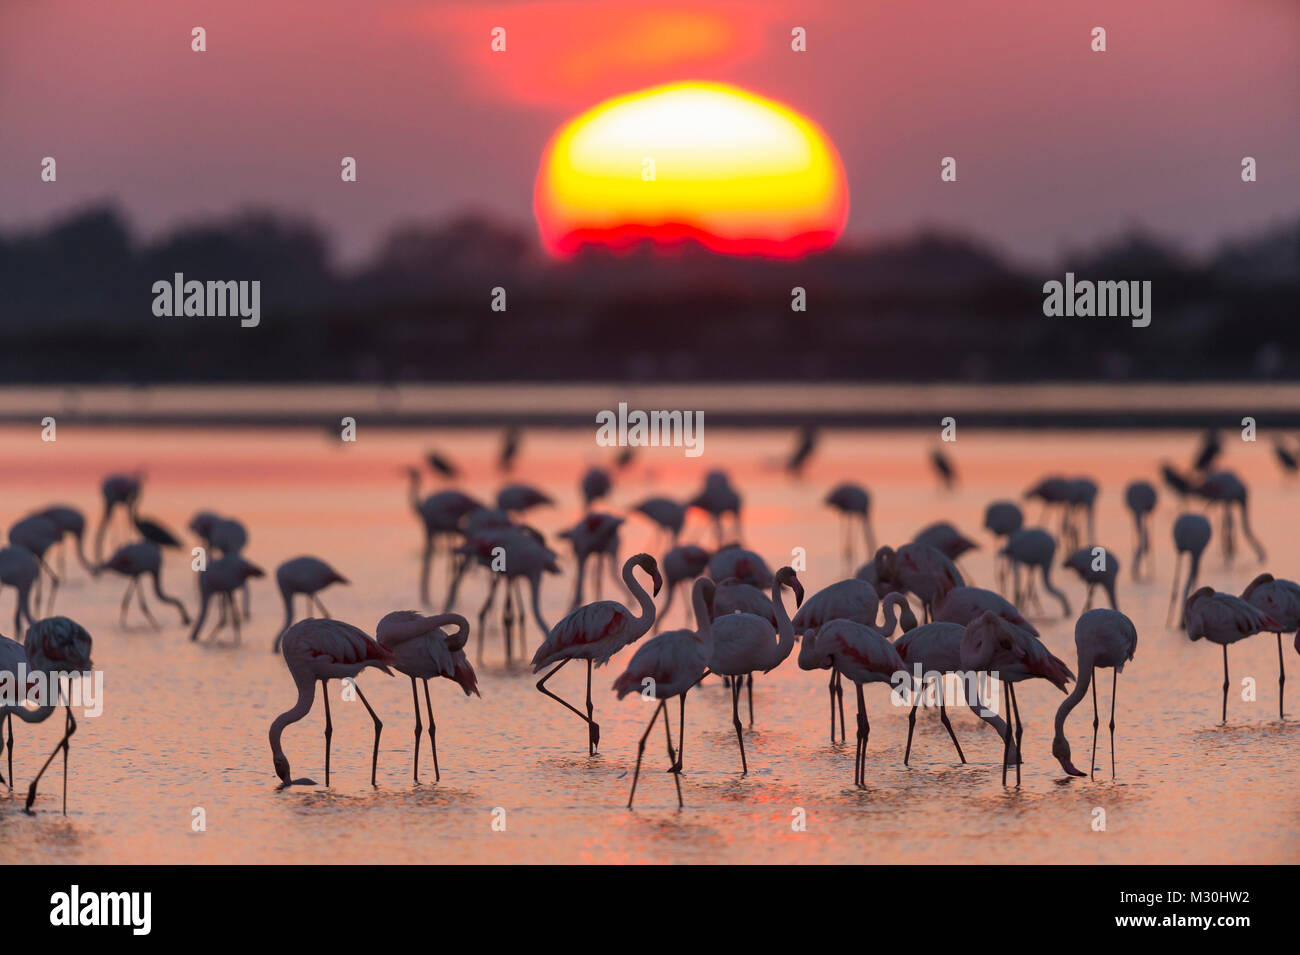 European Flamingo, Great Flamingo, Phoenicopterus roseus, at Sunrise, Saintes-Maries-de-la-Mer, Parc naturel régional Stock Photo